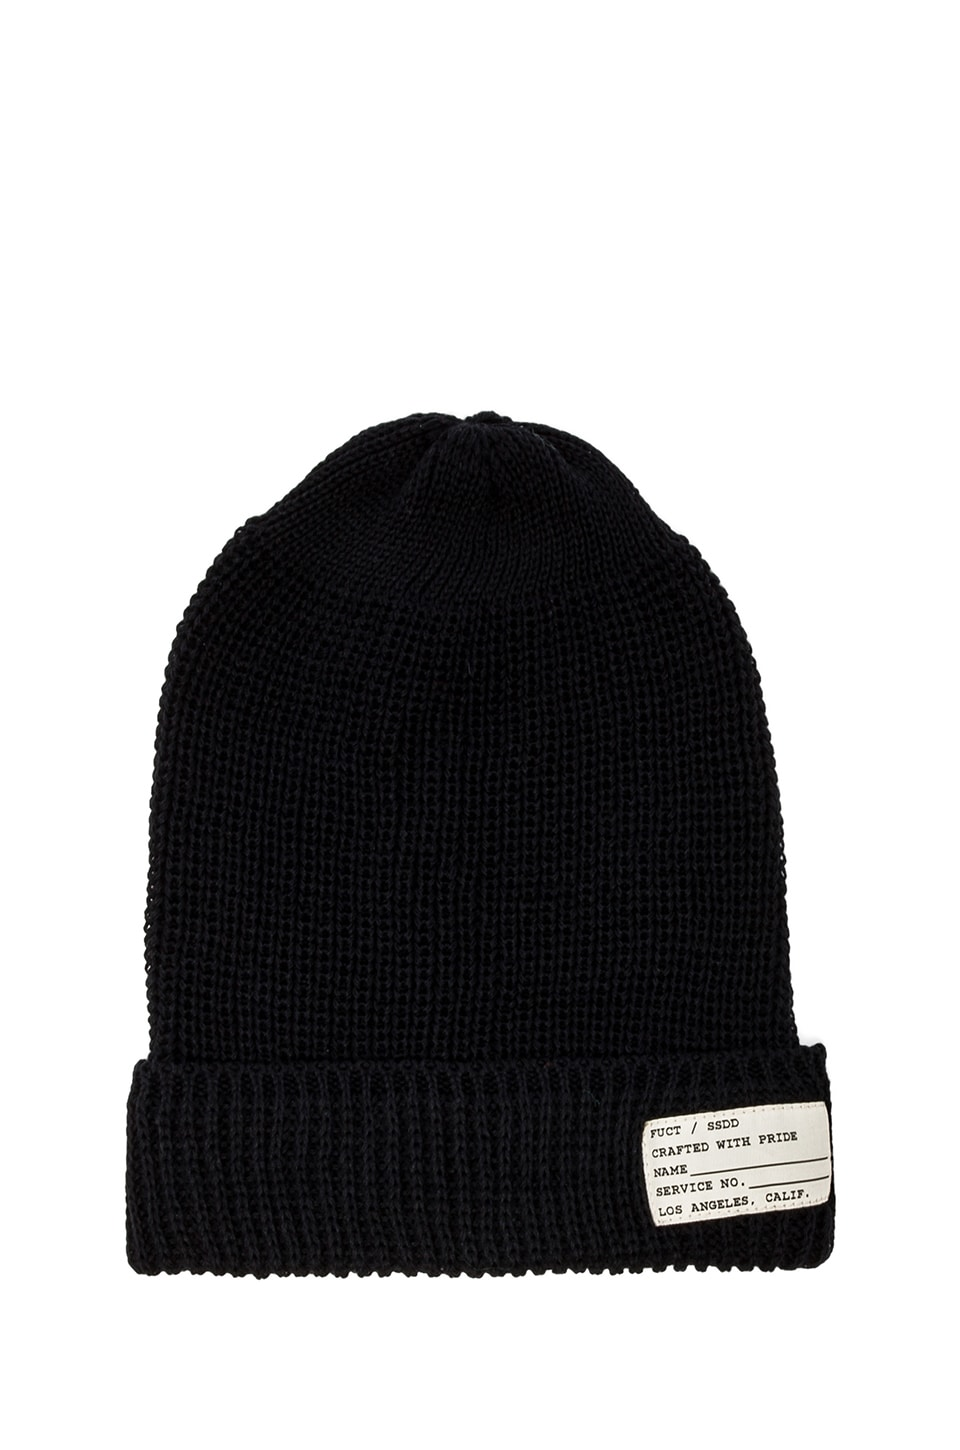 Fuct SSDD Watch Cap in Black